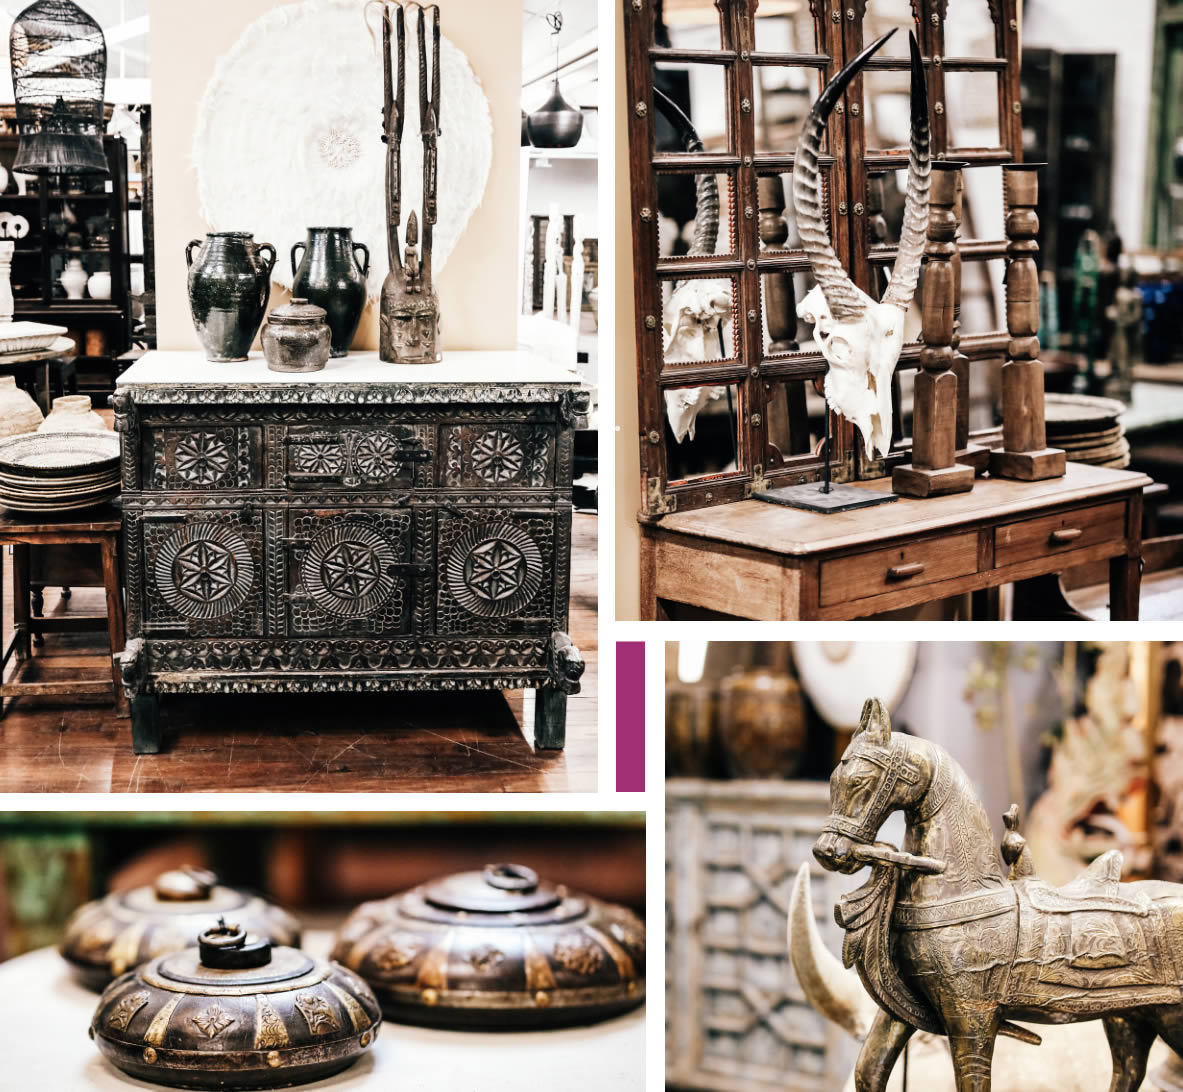 Indian antiques from Rajasthan